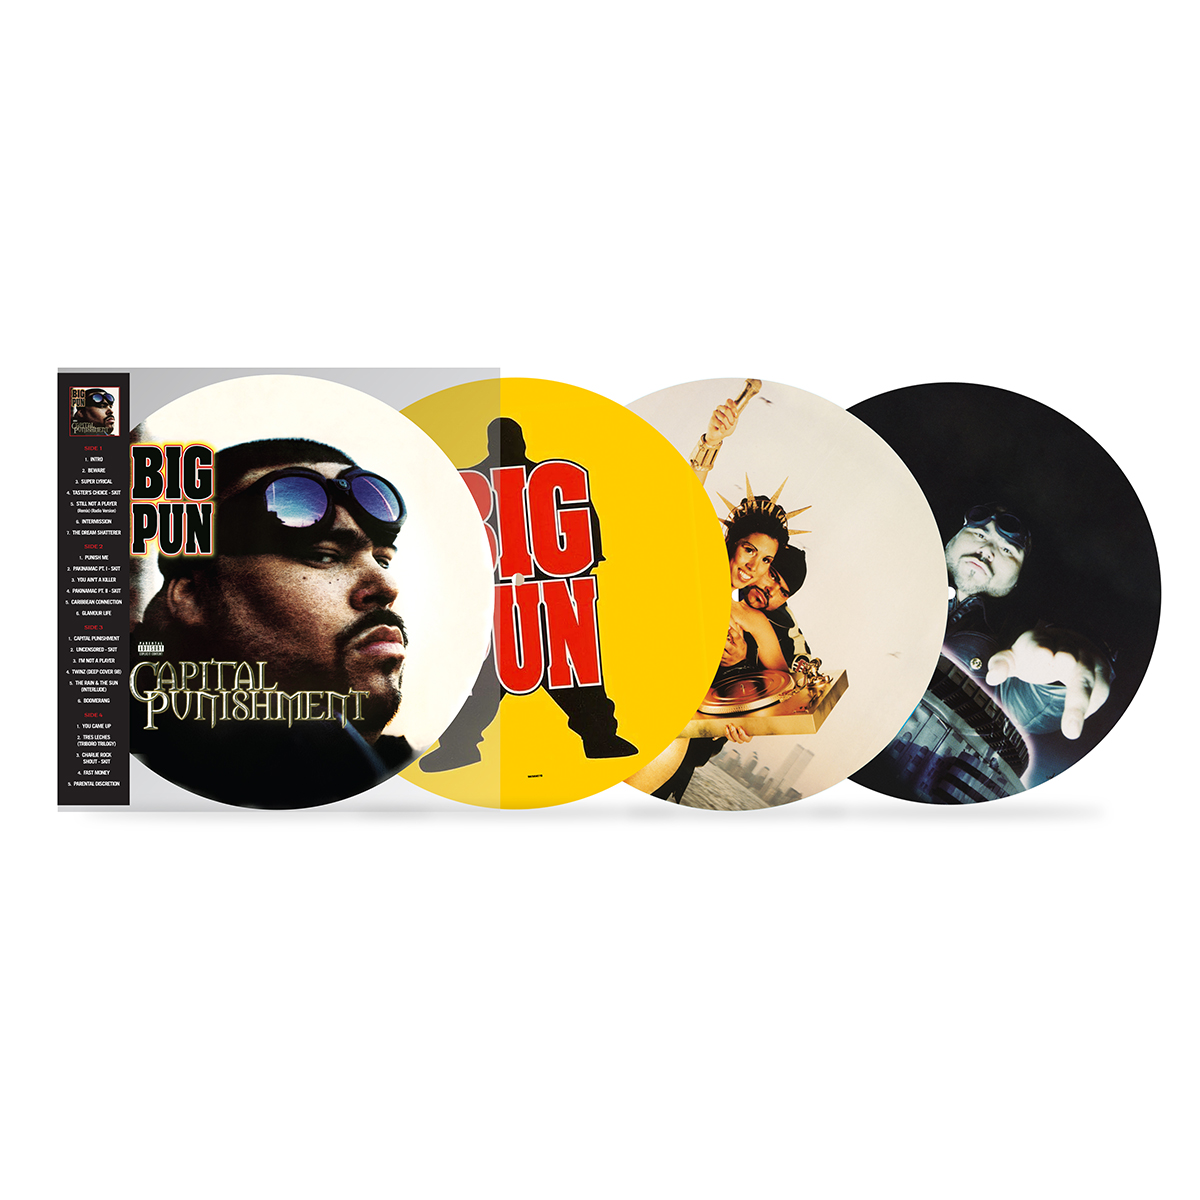 Big Pun: Capital Punishment (20th Anniversary Picture Disc) 2-Disc LP